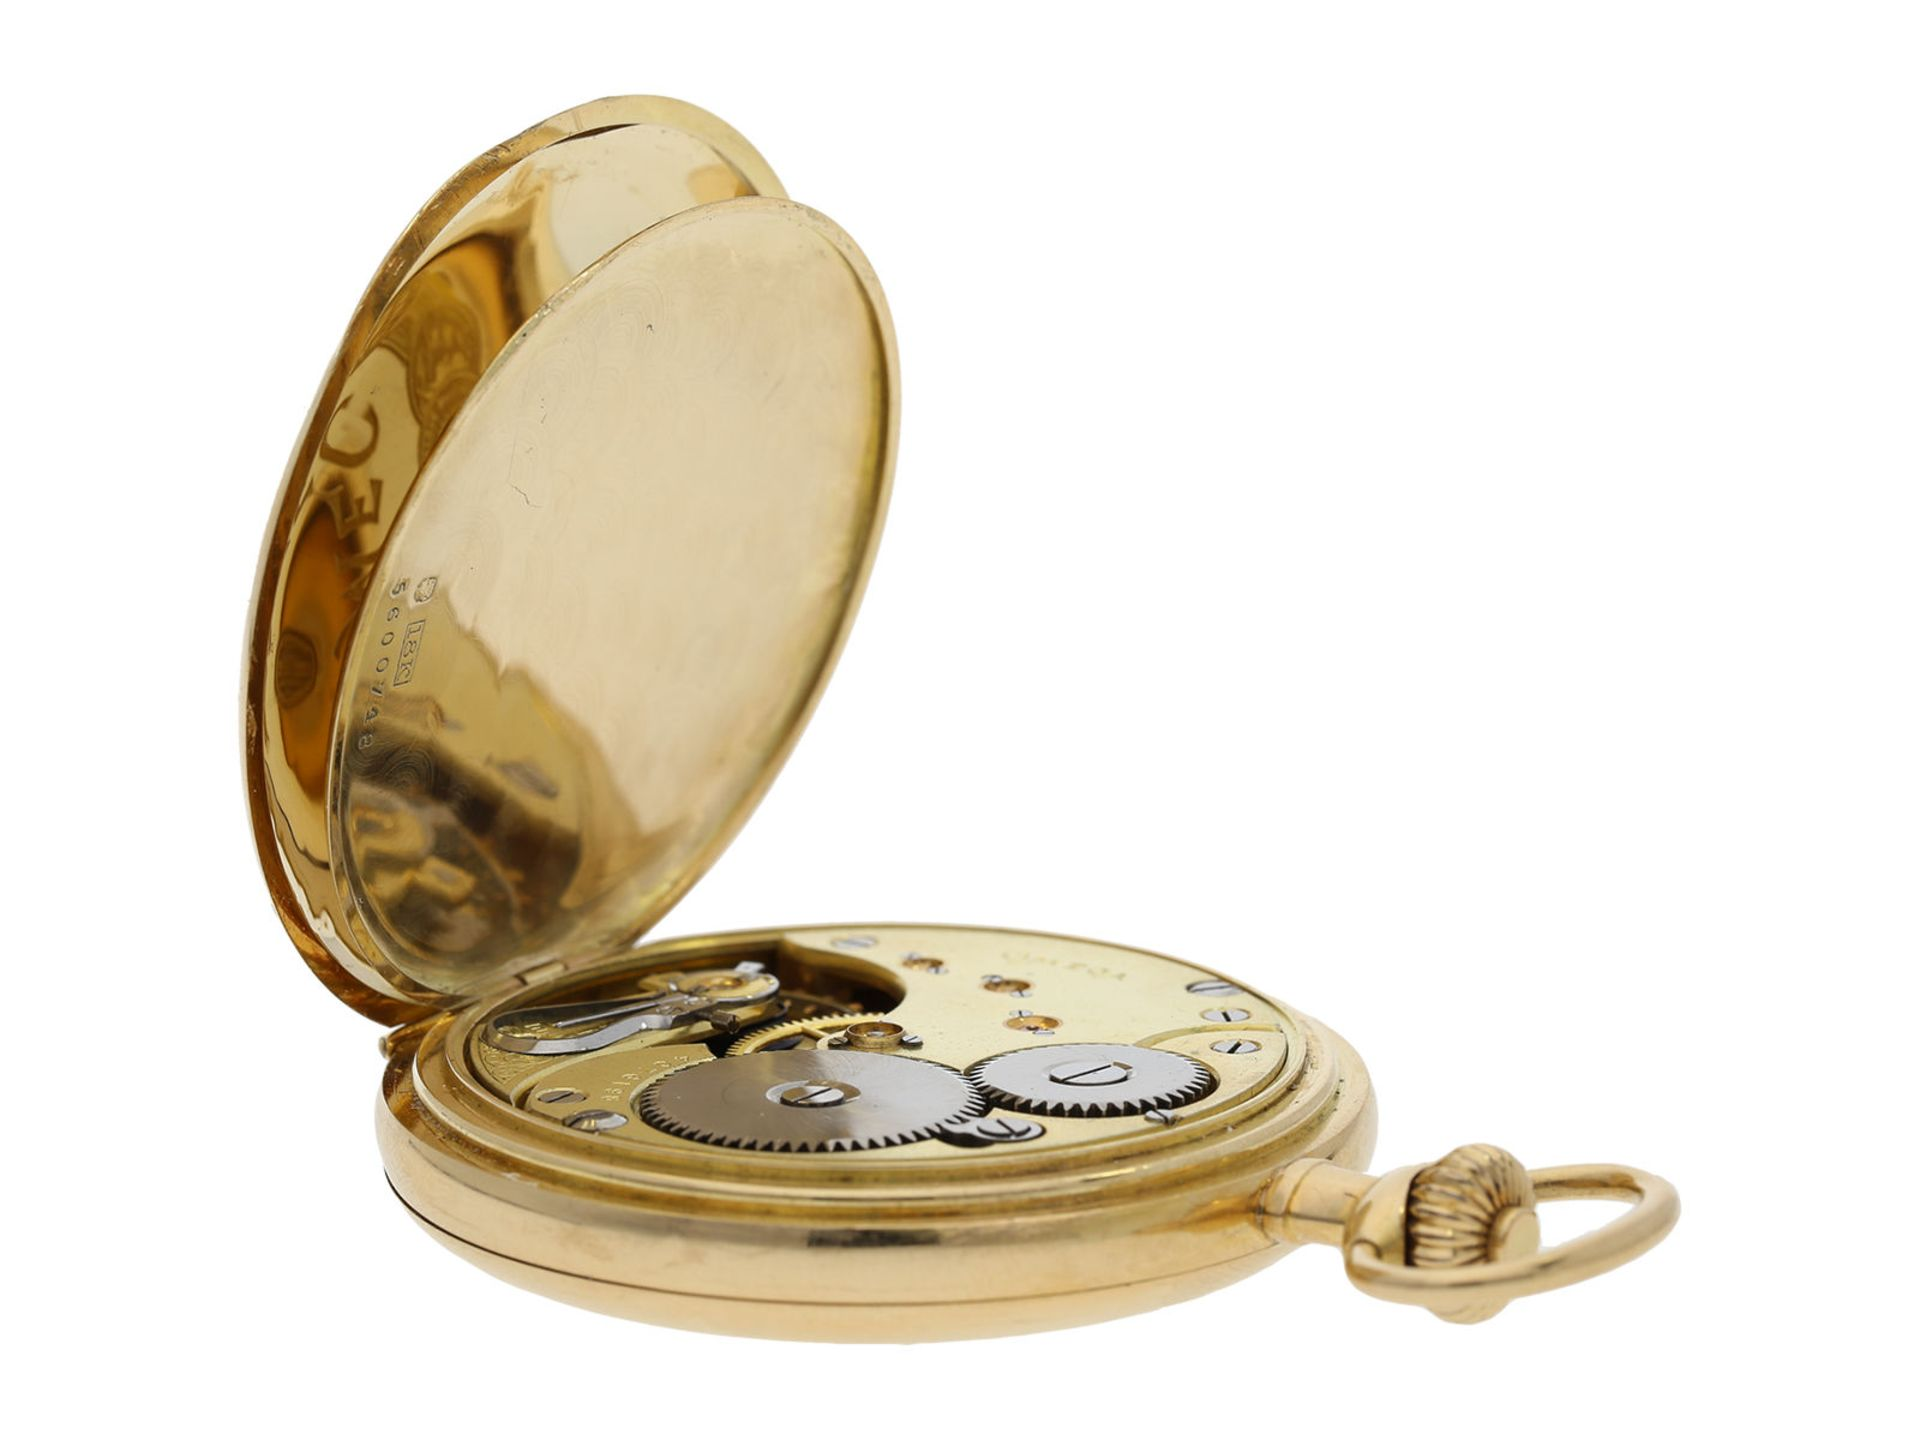 Pocket watch: Omega gold hunting case watch, ca. 1912 - Bild 3 aus 8